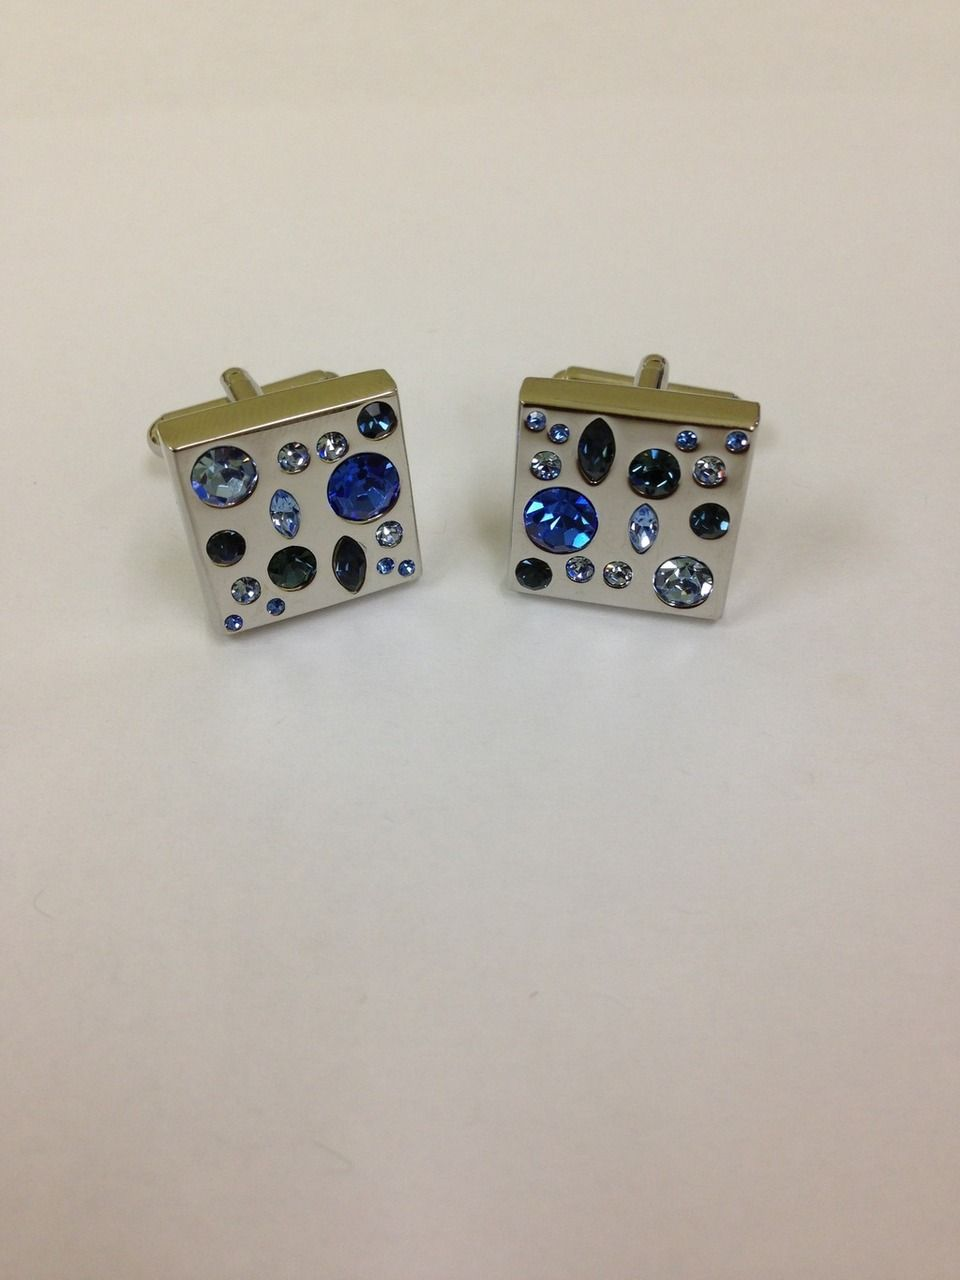 2 Pc. Blue Stone Fashion Design Cufflinks